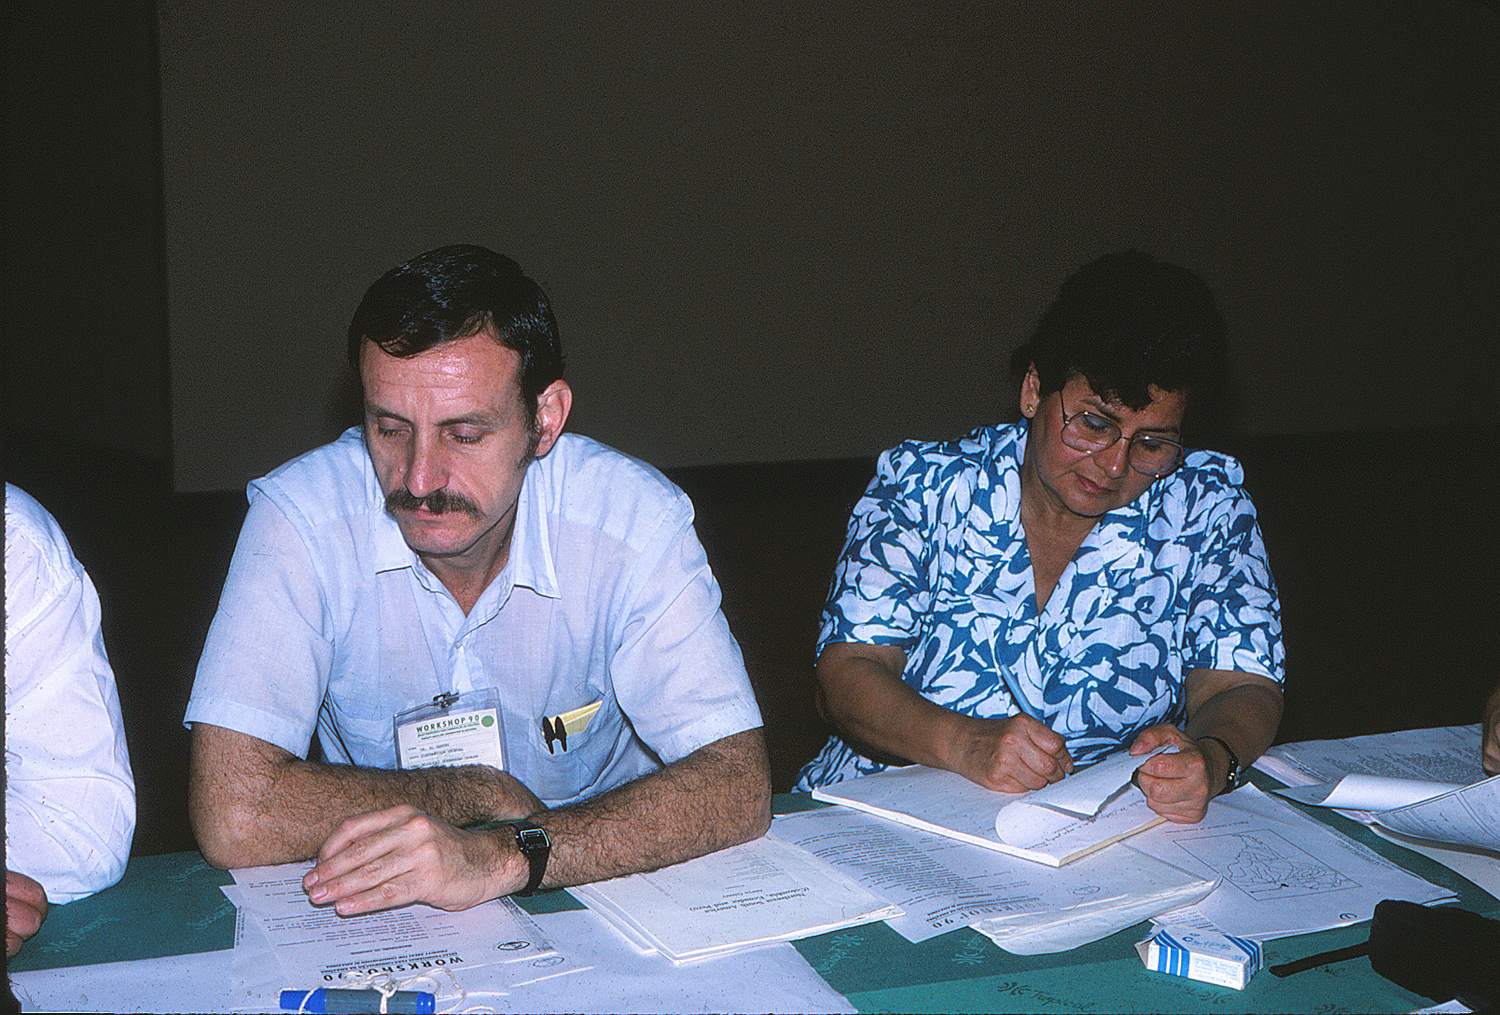 Al Gentry and Olga Macbryde in 1990. Photo by S. A. Mori.